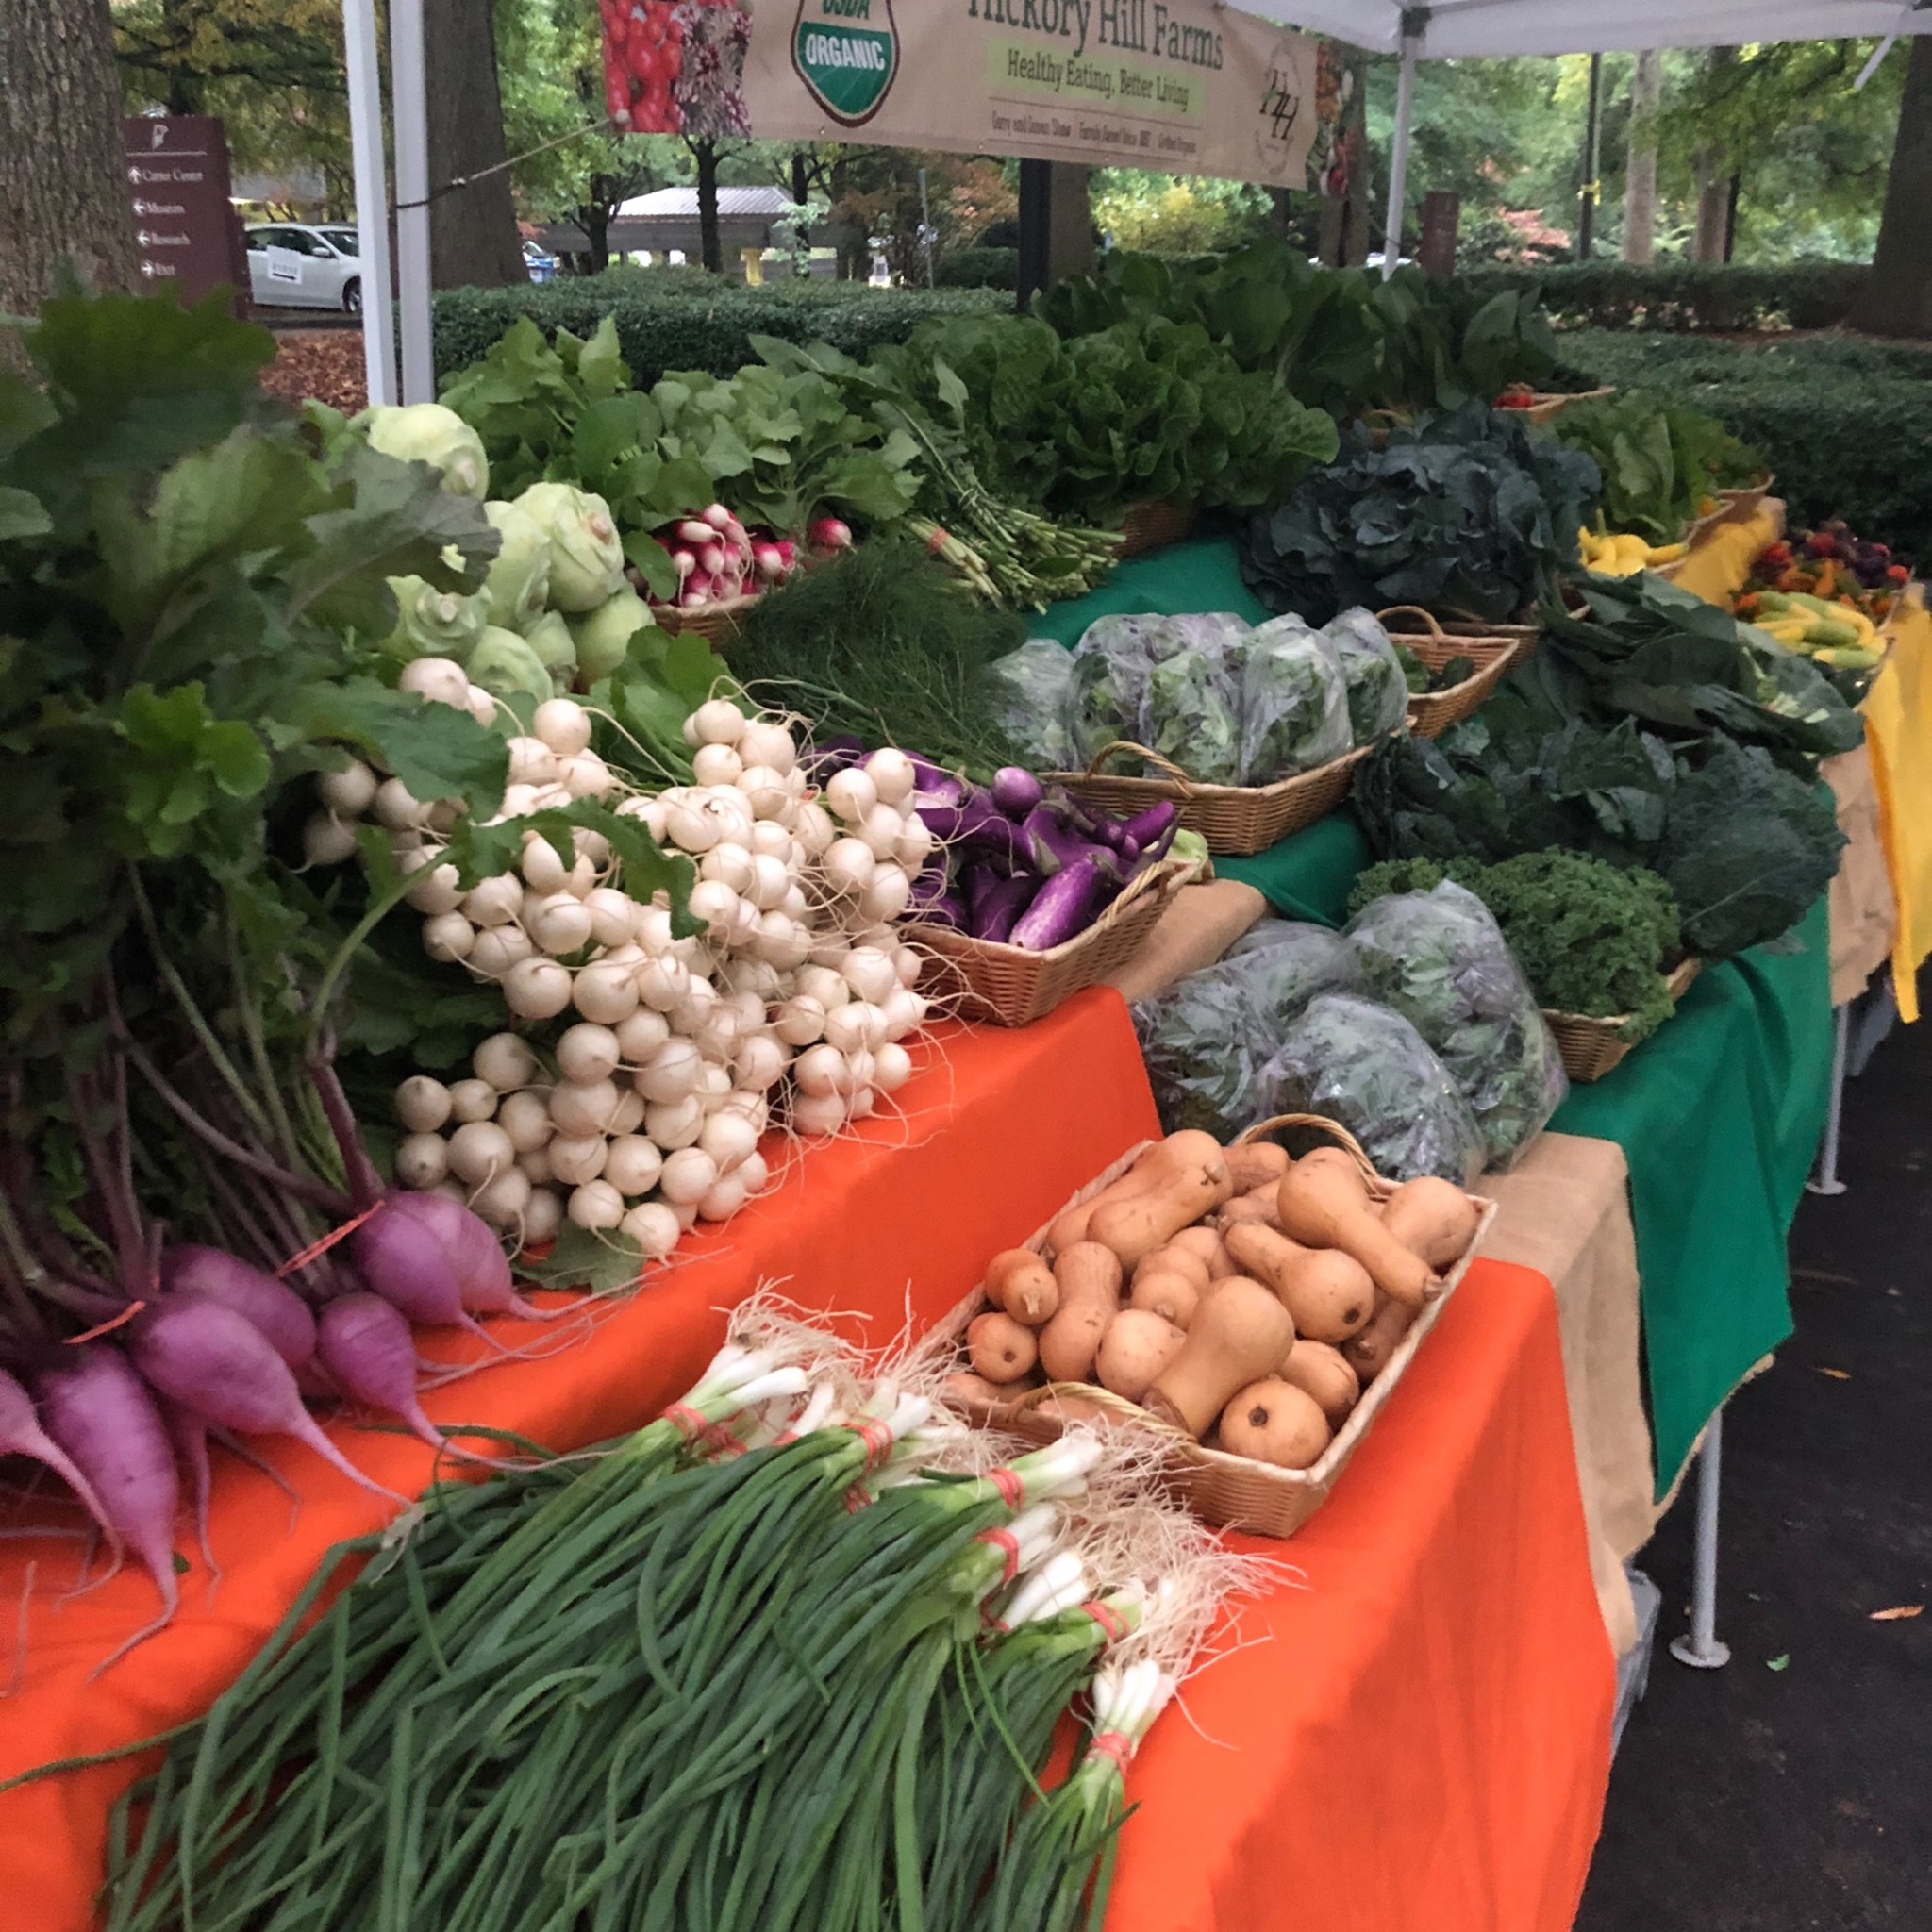 Vegetables from Hickory Hill Farms at Freedom Farmers Market